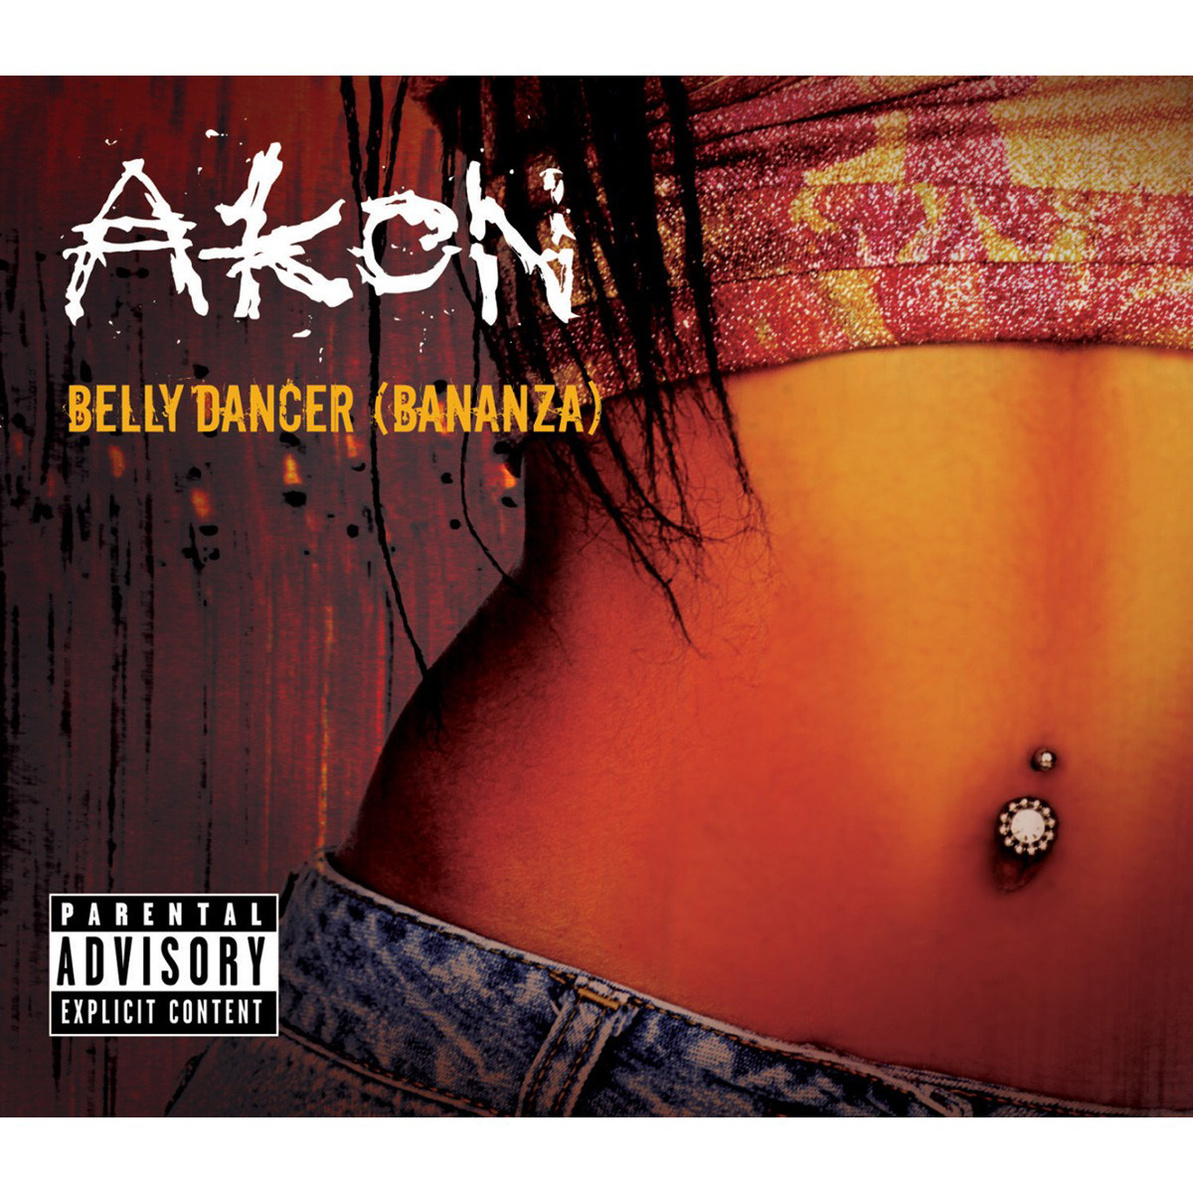 Akon - Belly Dancer (Bananza)